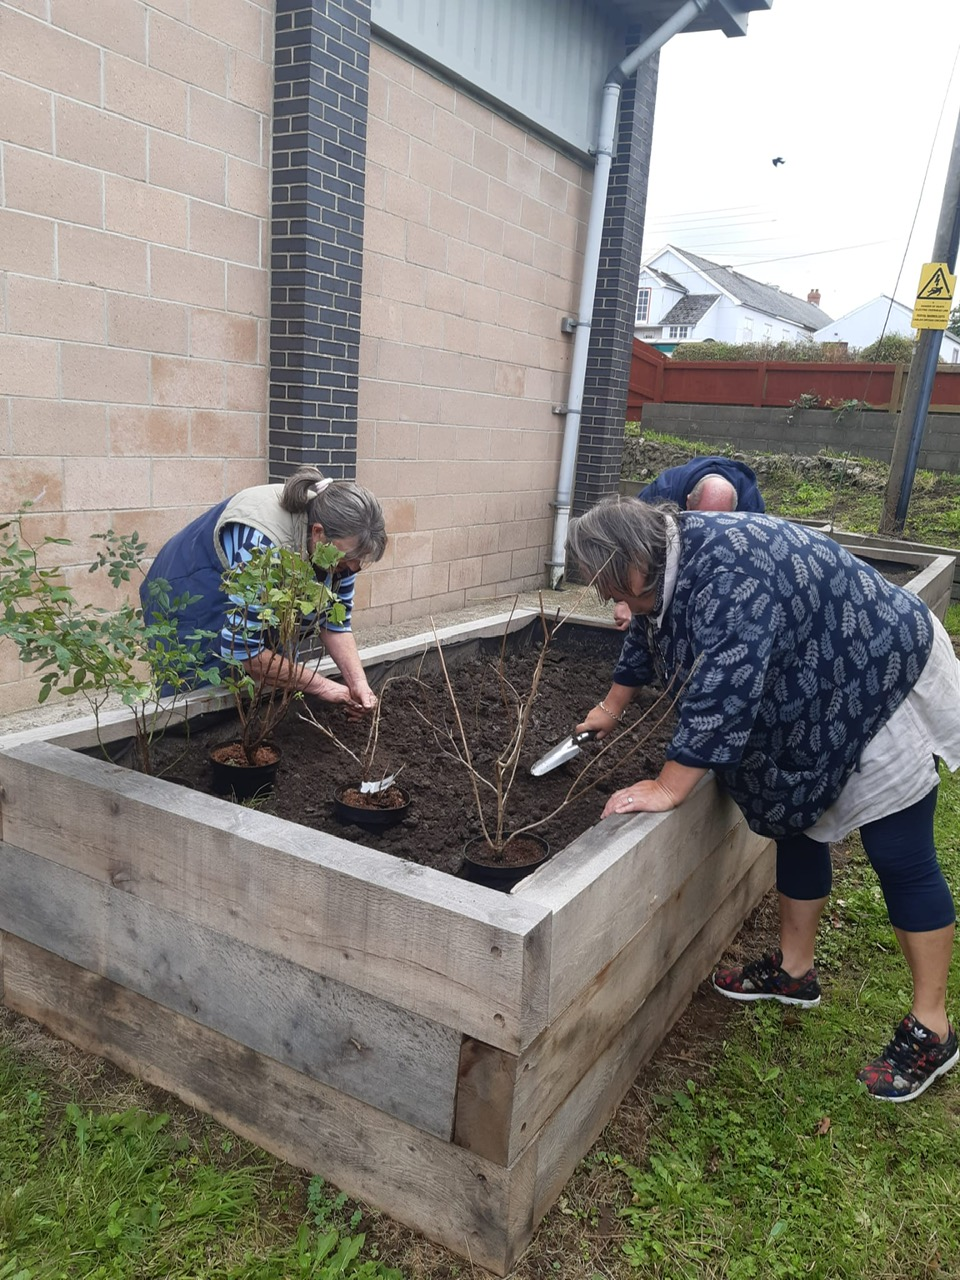 Dig in at our community garden!